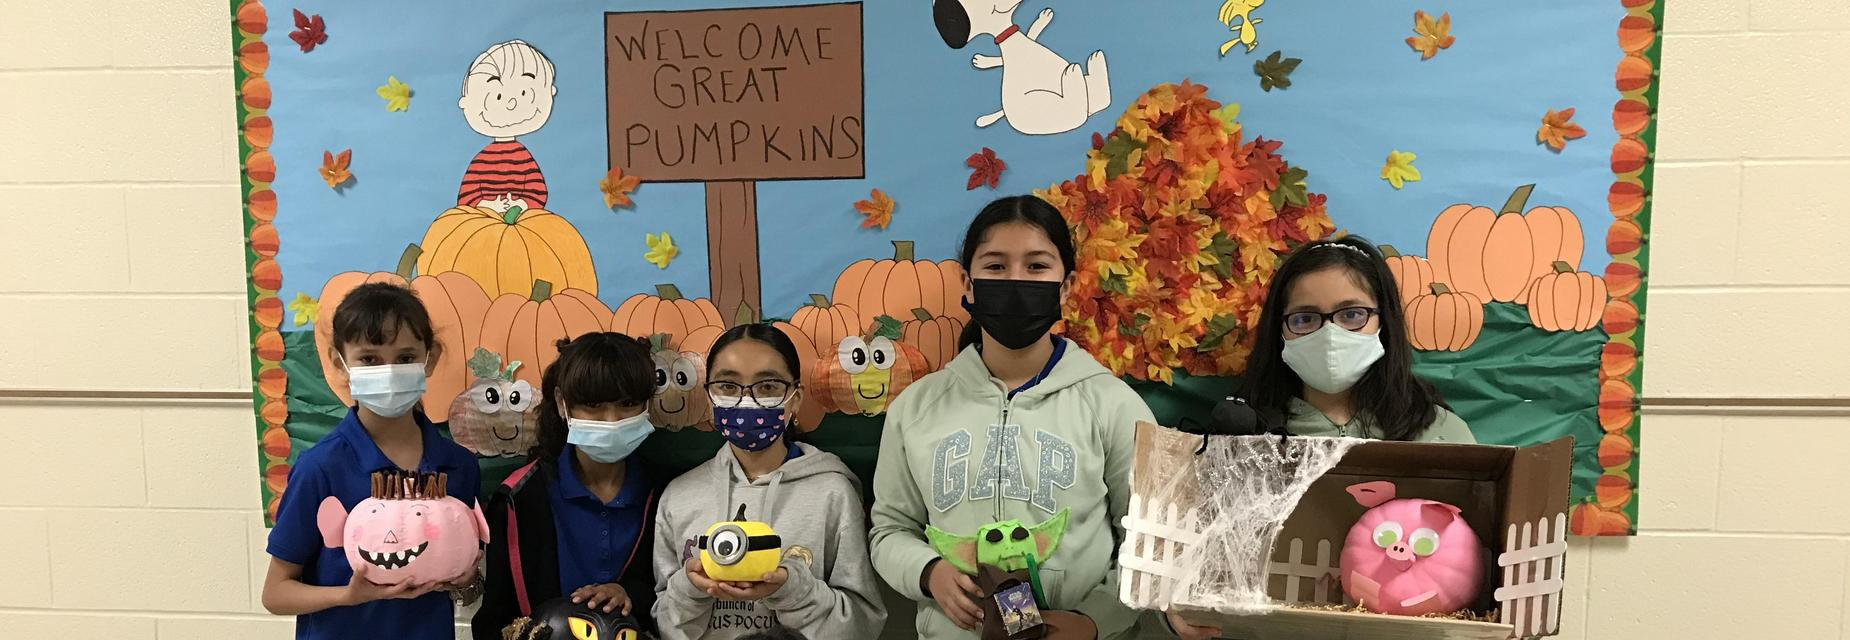 5th graders with pumpkin characters